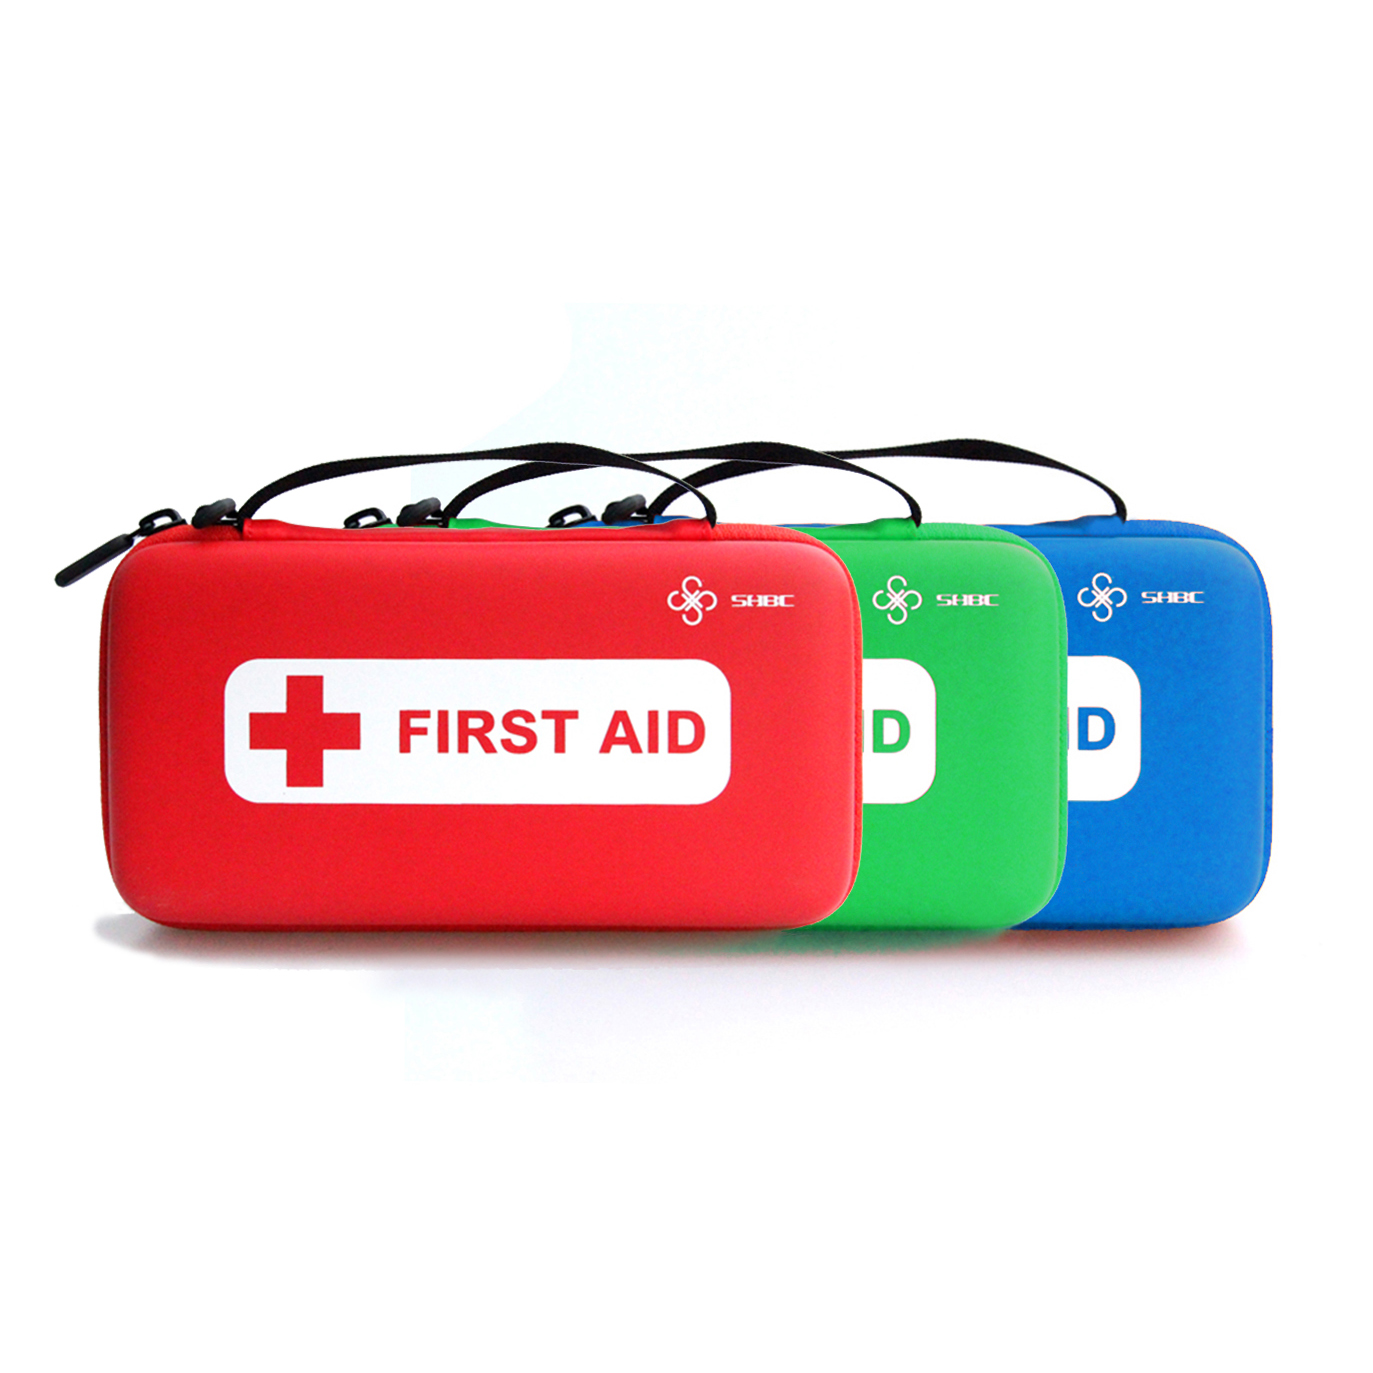 Hot Selling Emergency EVA First Aid <strong>Kit</strong> Set, Medical Bag First Aid Box Gift For Home, Travel, etc